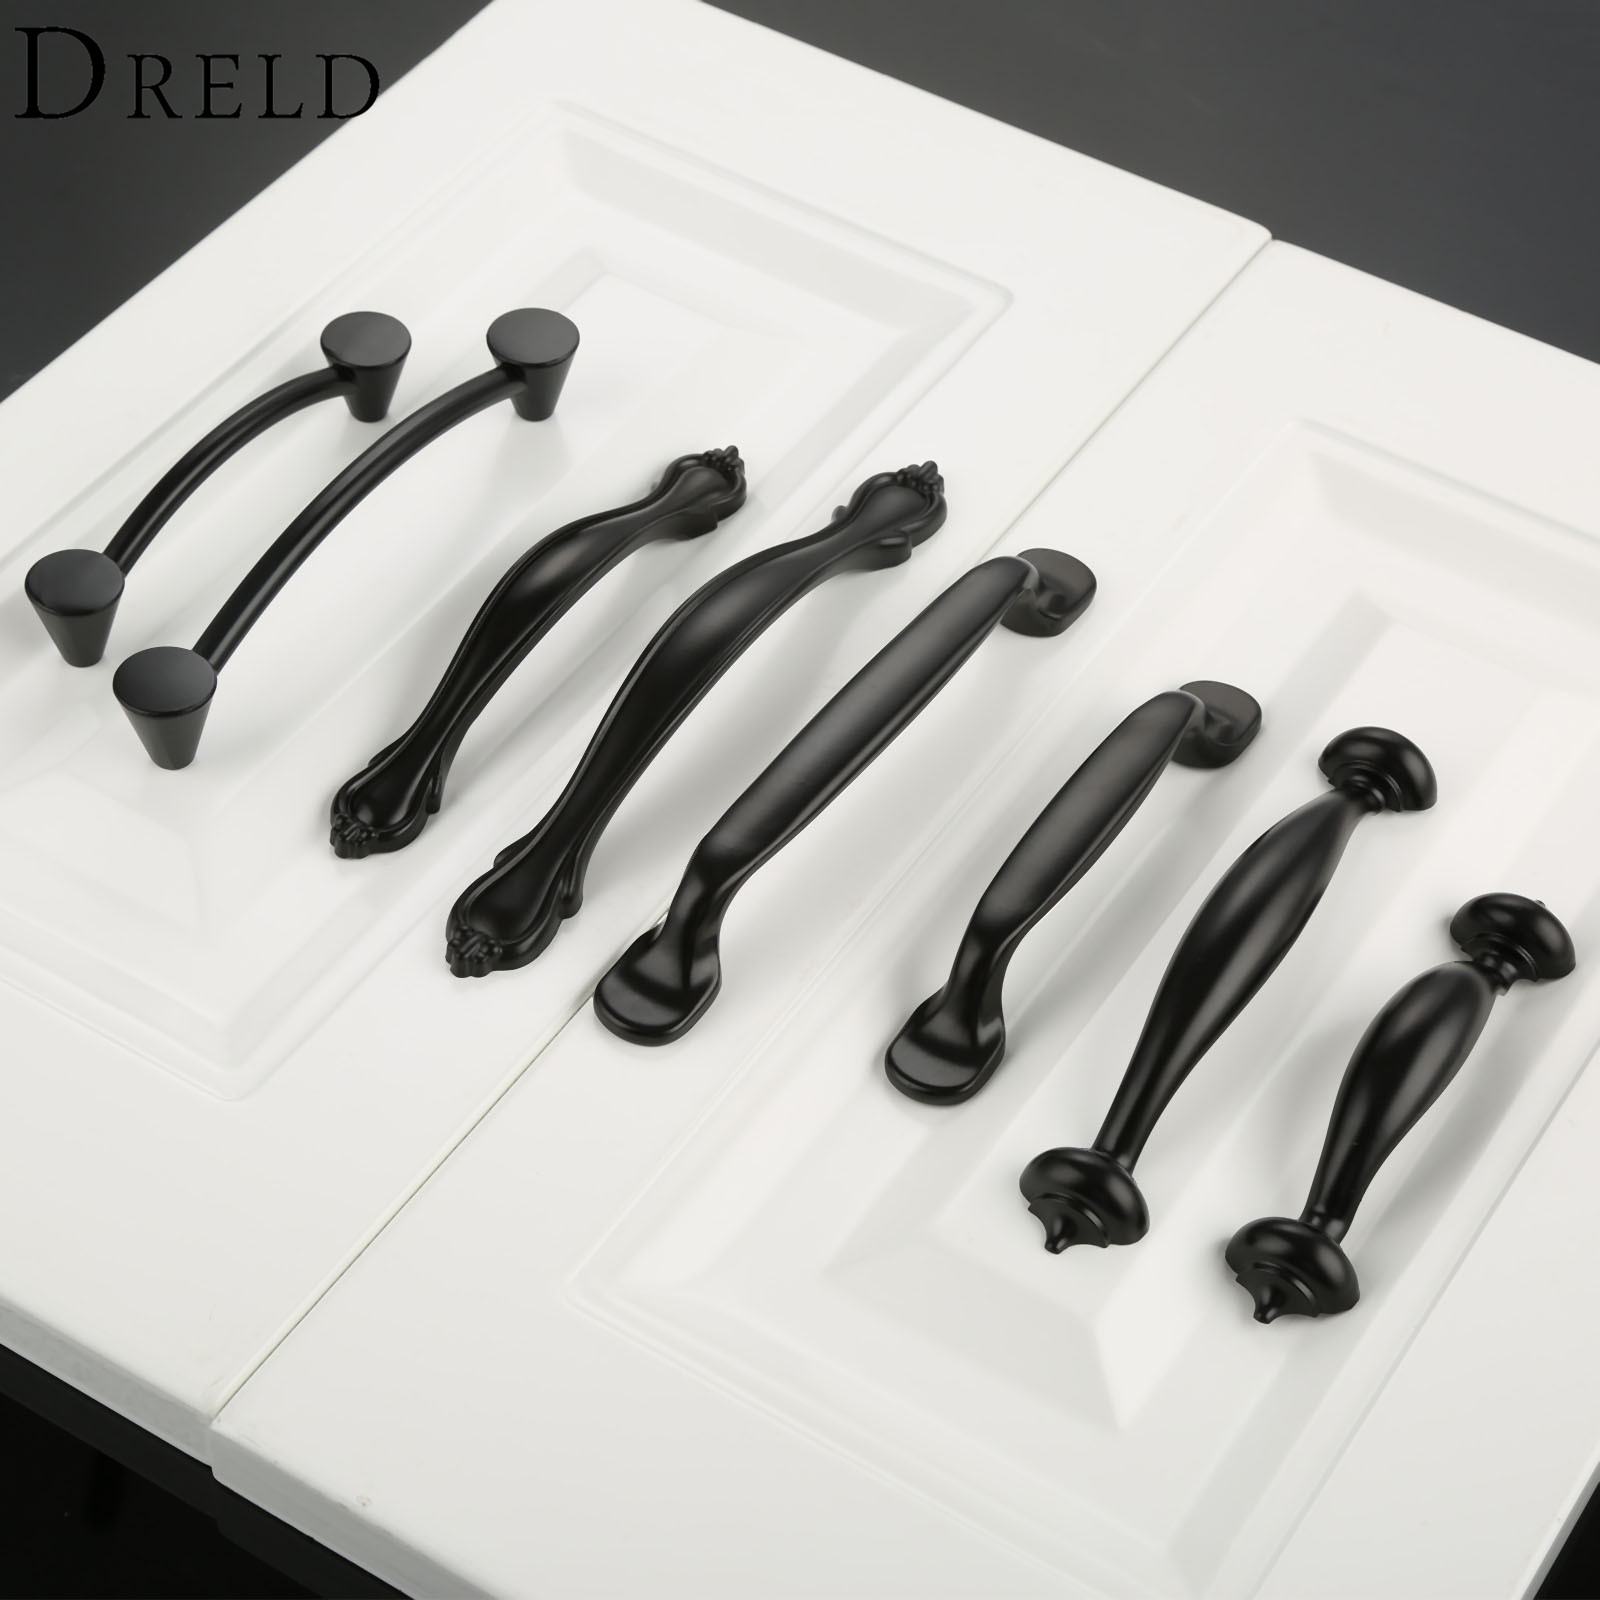 DRELD Zinc Alloy Black Furniture Handle Cabinet Knobs and Handles Cupboard Wardrobe Kitchen Door Pulls Handle Furniture Hardware 10 inch long cabinet handles and knobs drawer pull for furniture and cupboard simple wardrobe handle zinc alloy door handle